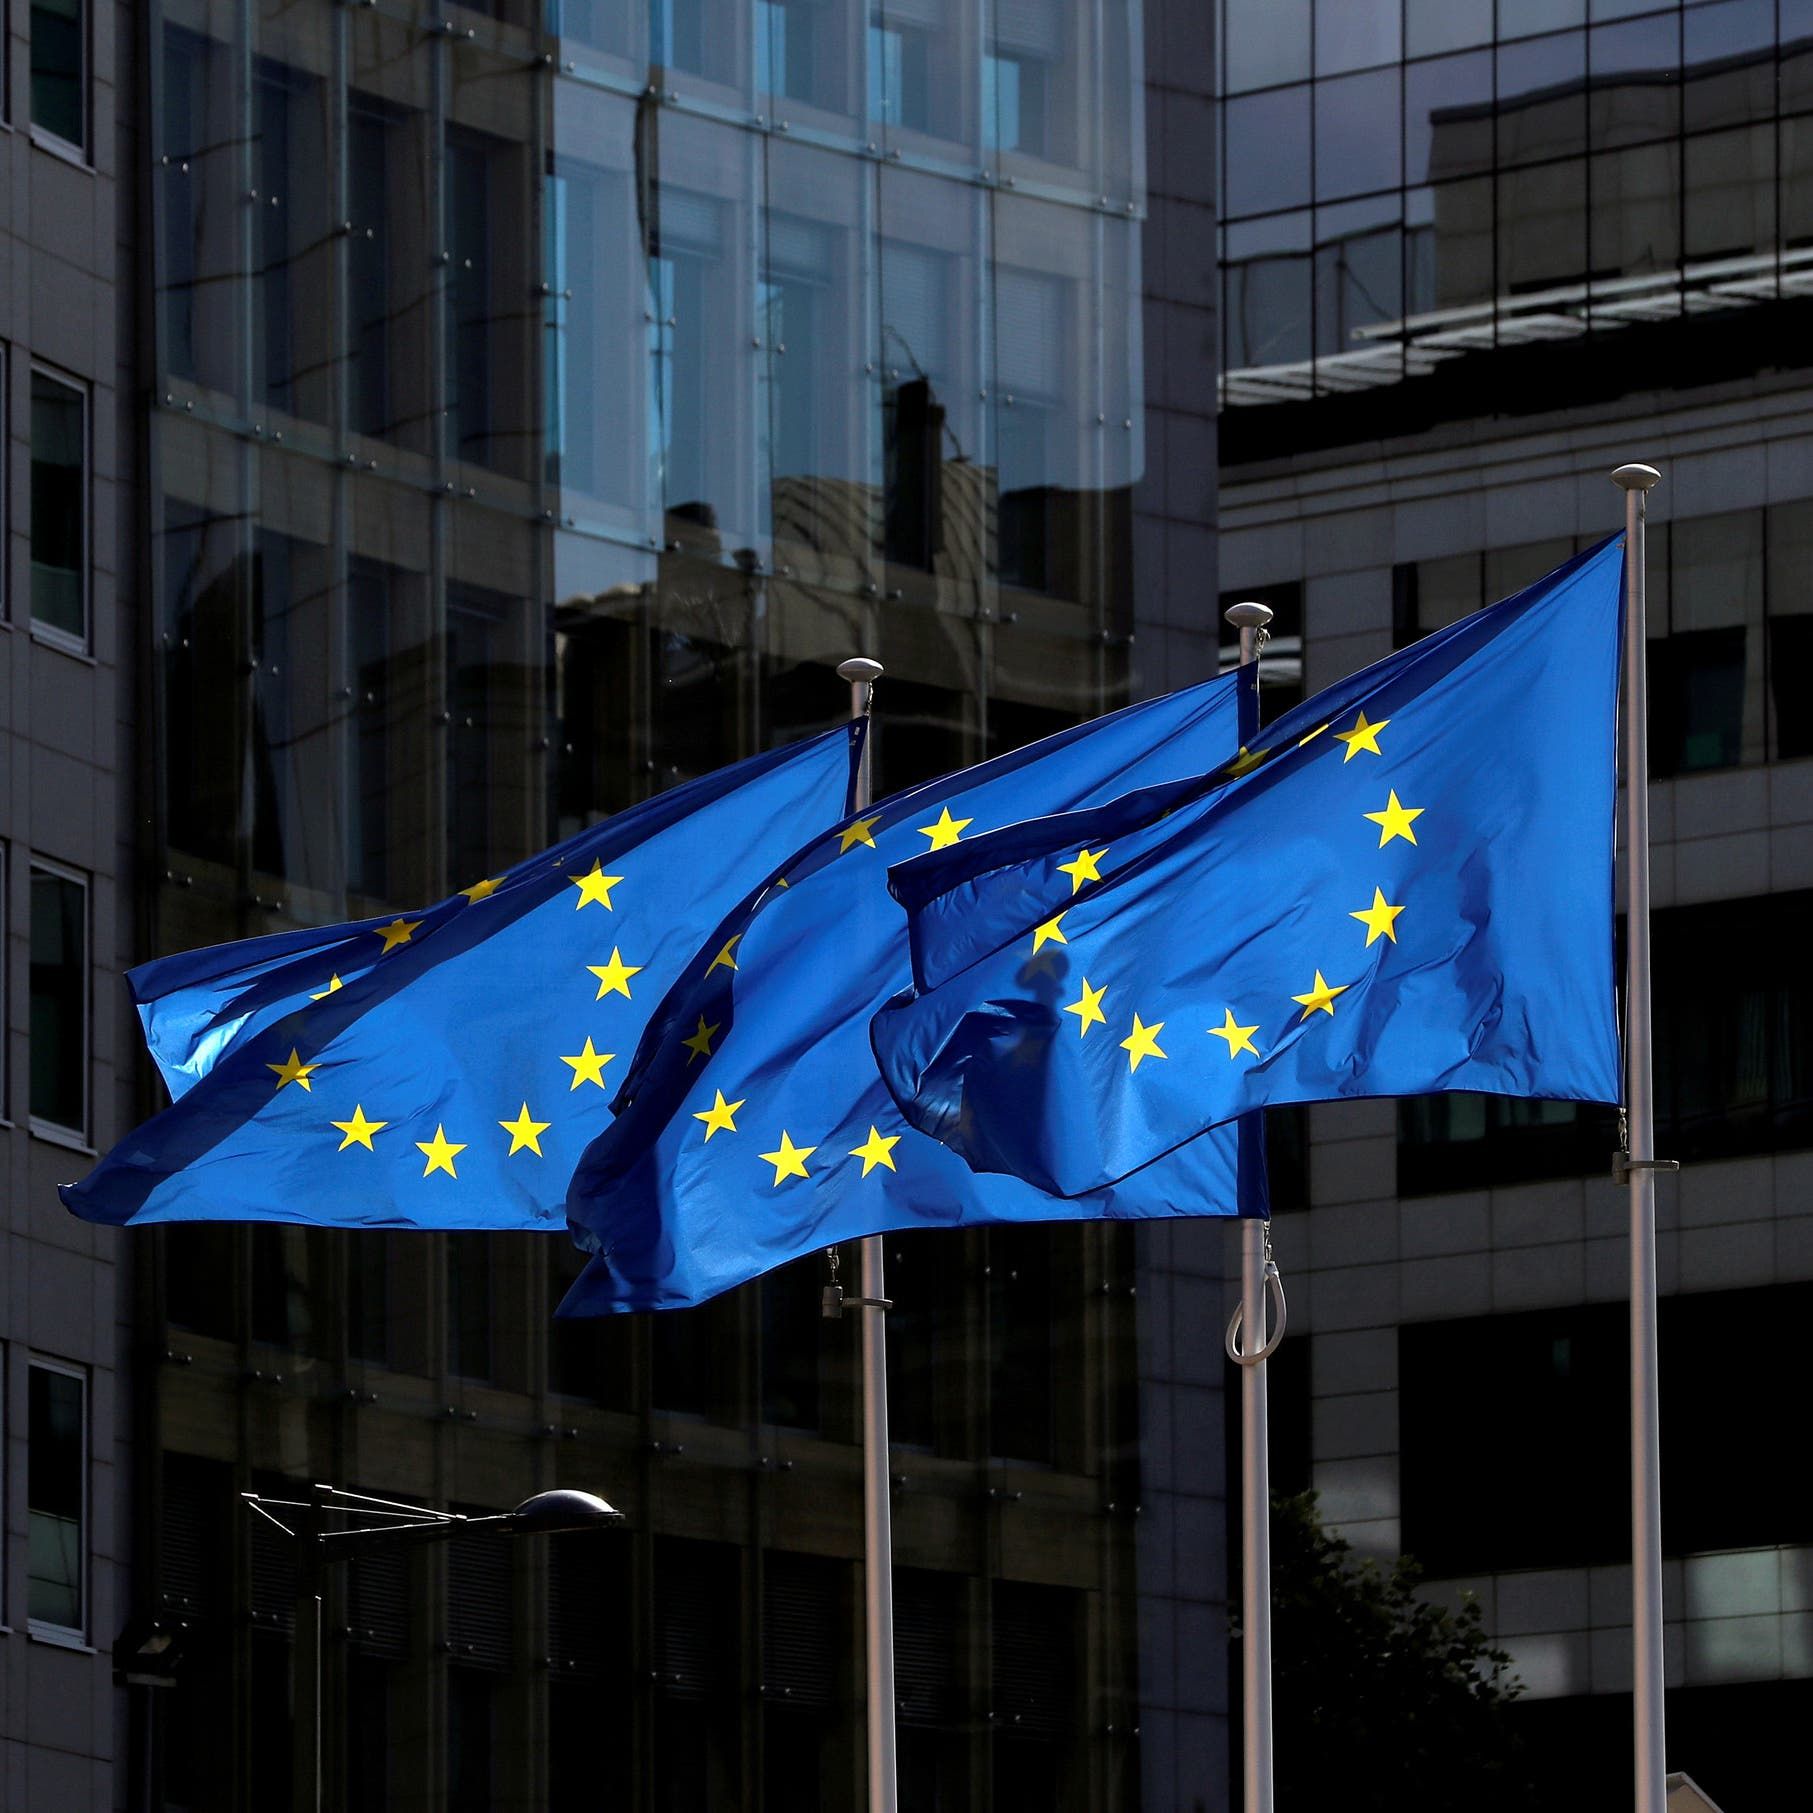 EU to reopen borders to travelers fully vaccinated against COVID-19